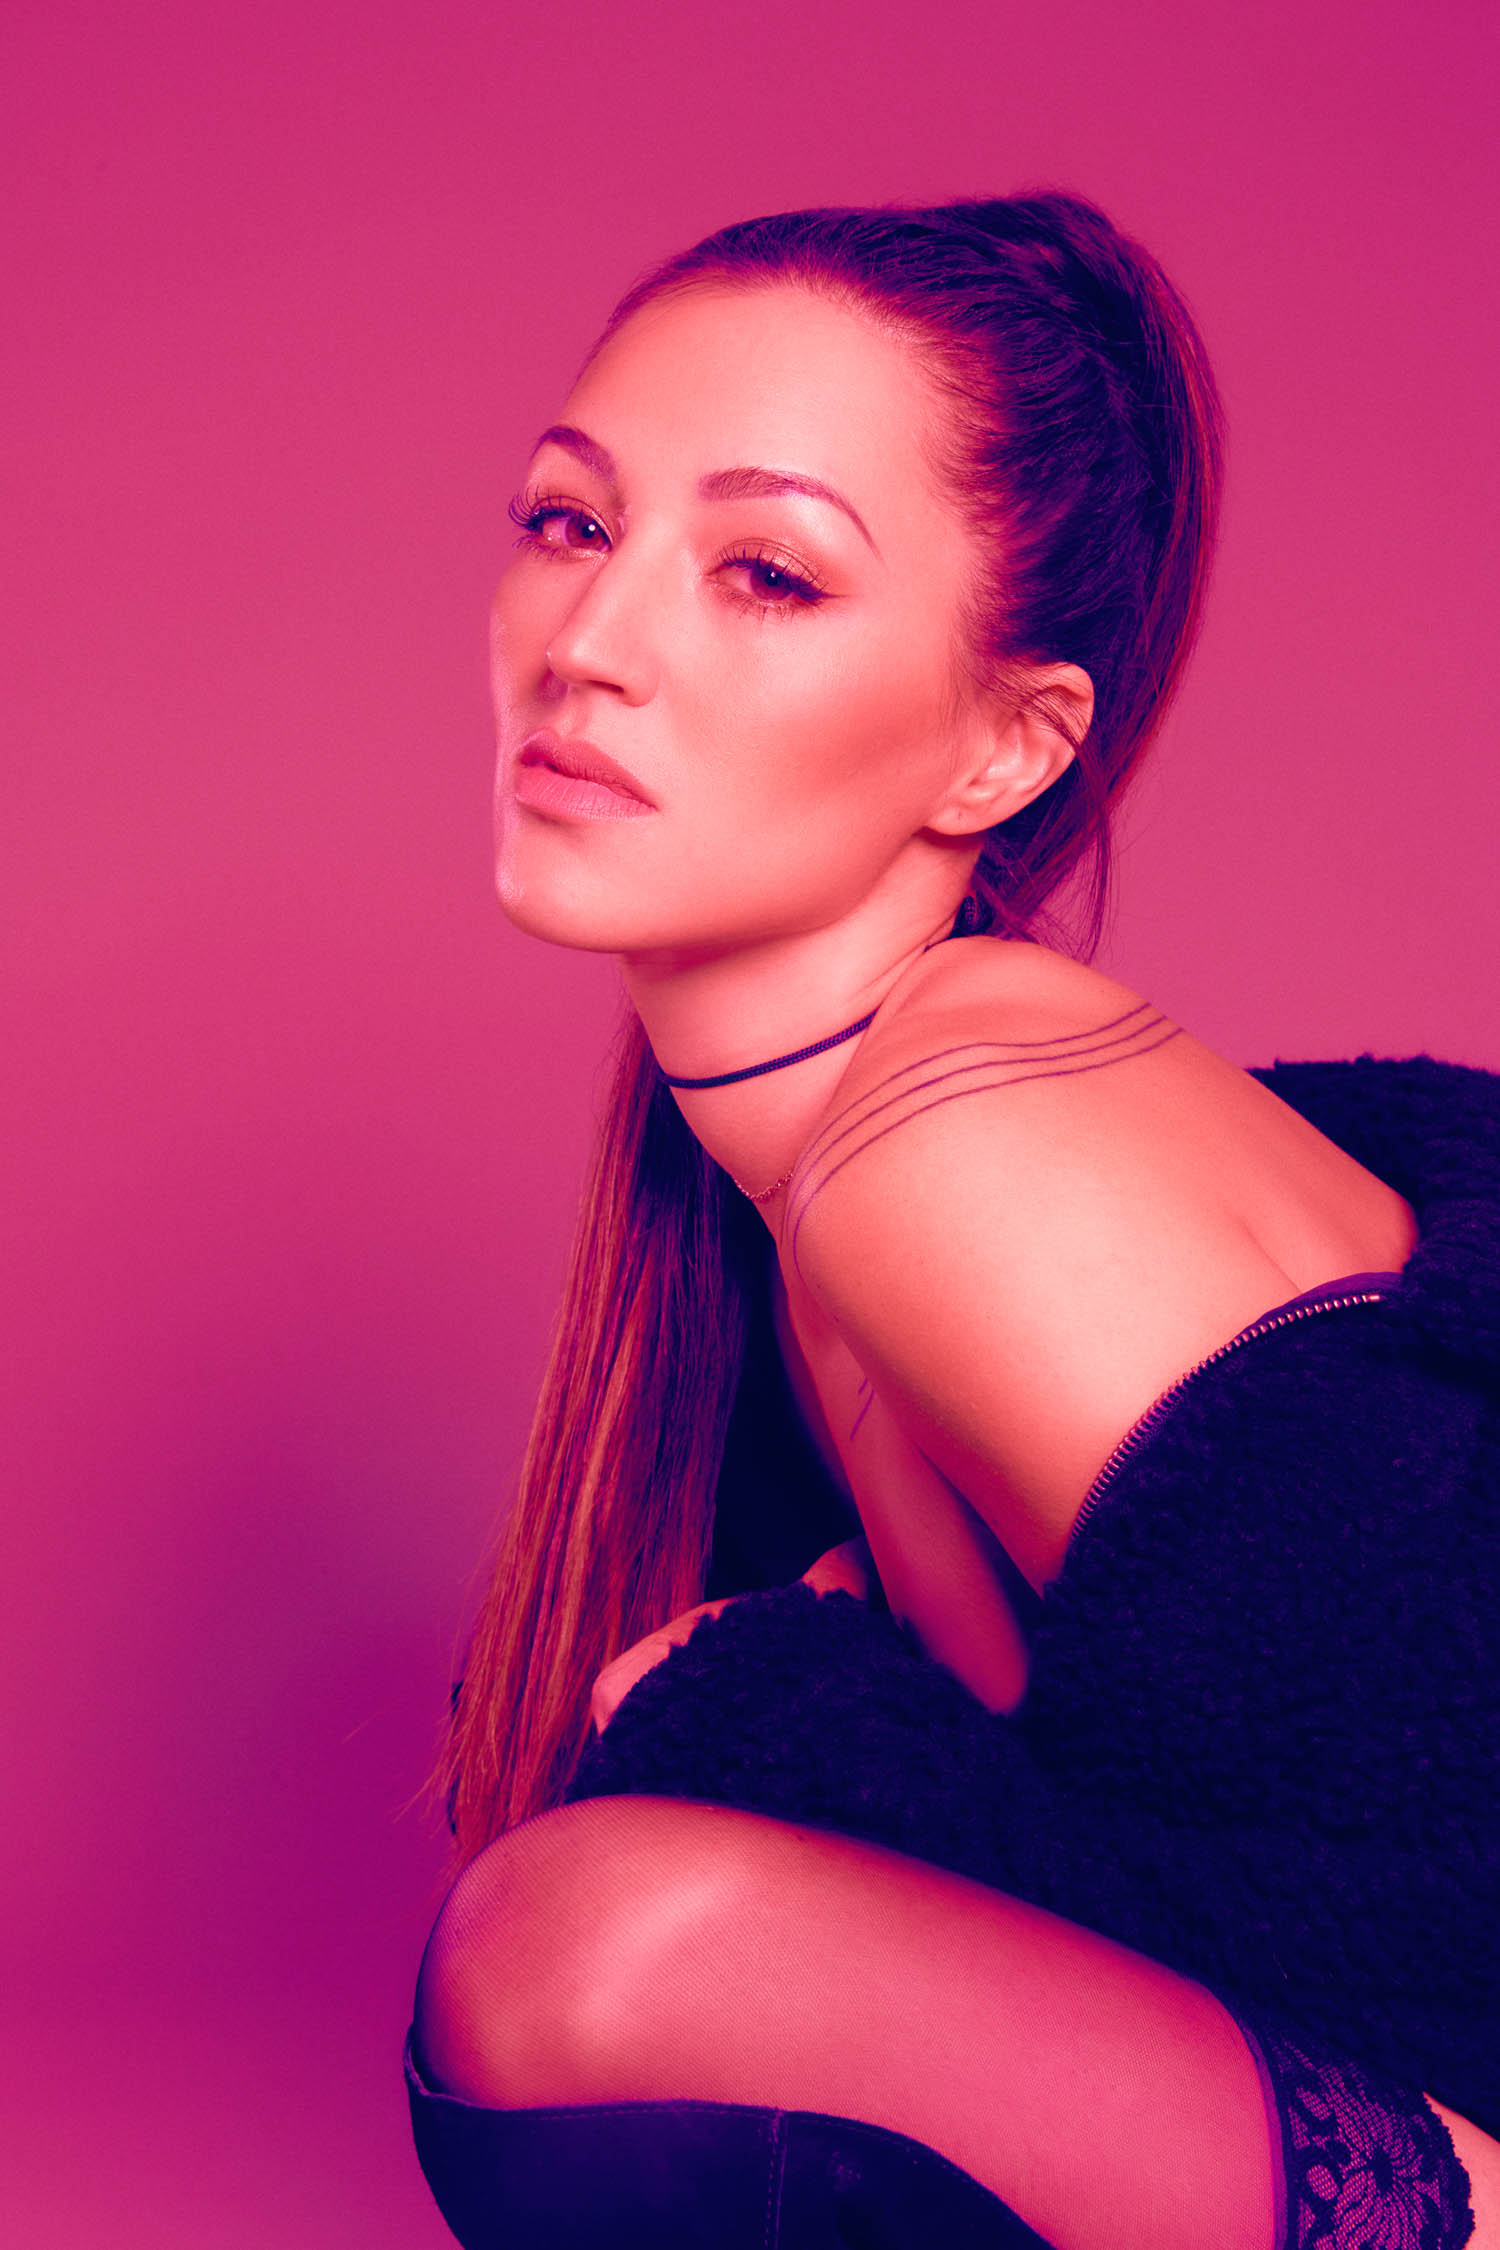 Model with choker and Ariana Grande style ponytail